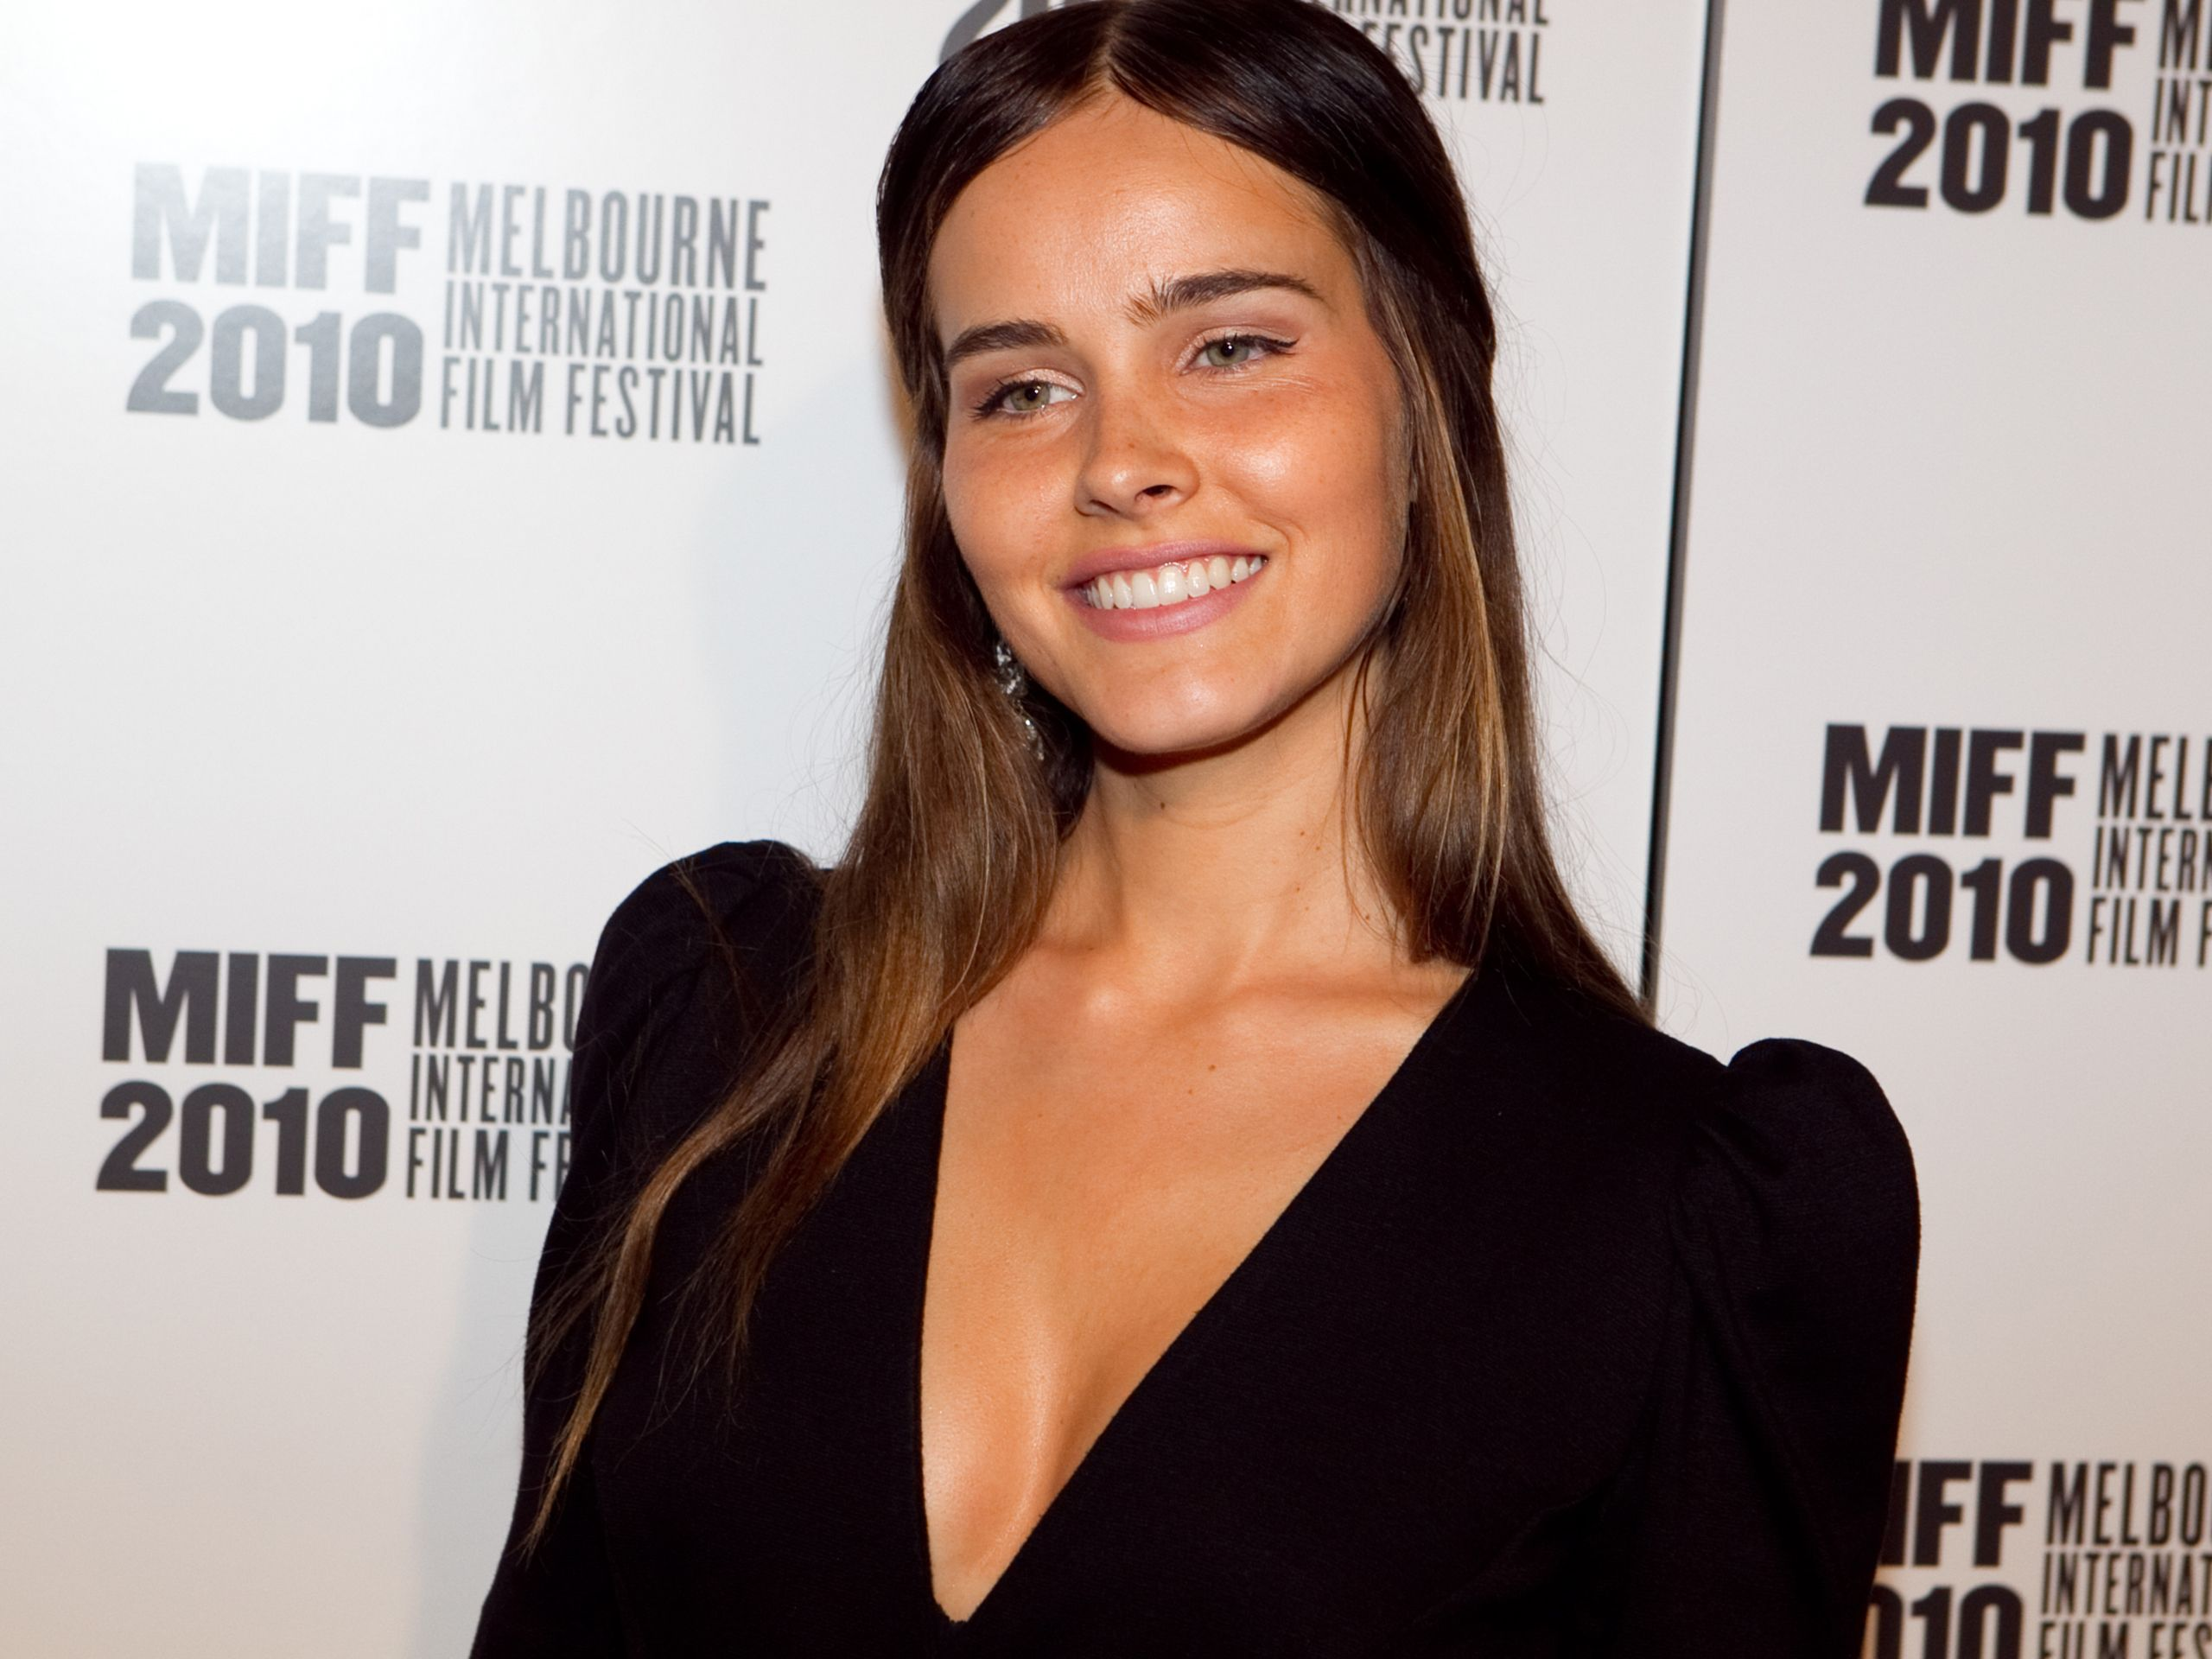 isabel lucas gif huntisabel lucas instagram, isabel lucas 2016, isabel lucas gif, isabel lucas 2017, isabel lucas site, isabel lucas фото, isabel lucas immortals, isabel lucas film, isabel lucas style, isabel lucas net worth, isabel lucas foto, isabel lucas wallpapers, isabel lucas wiki, isabel lucas give me love, isabel lucas movies list, isabel lucas twitter official, isabel lucas wdw, isabel lucas gif hunt, isabel lucas interview 2016, isabel lucas just jared